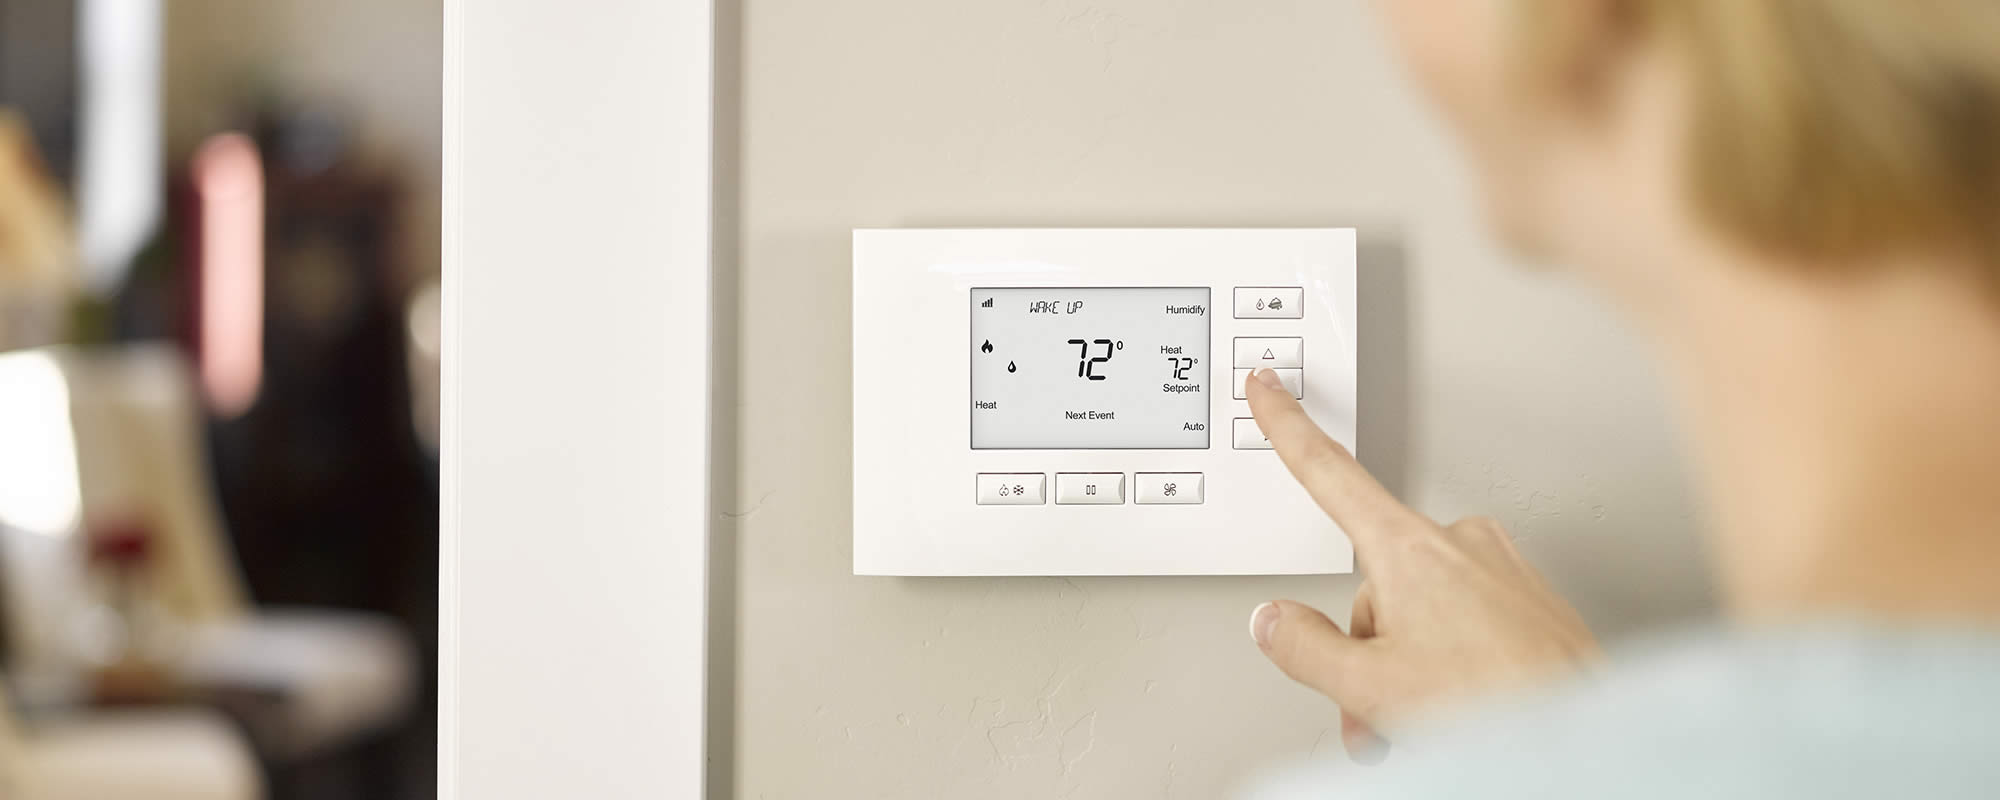 Climate Control, automated thermostat, Bend OR